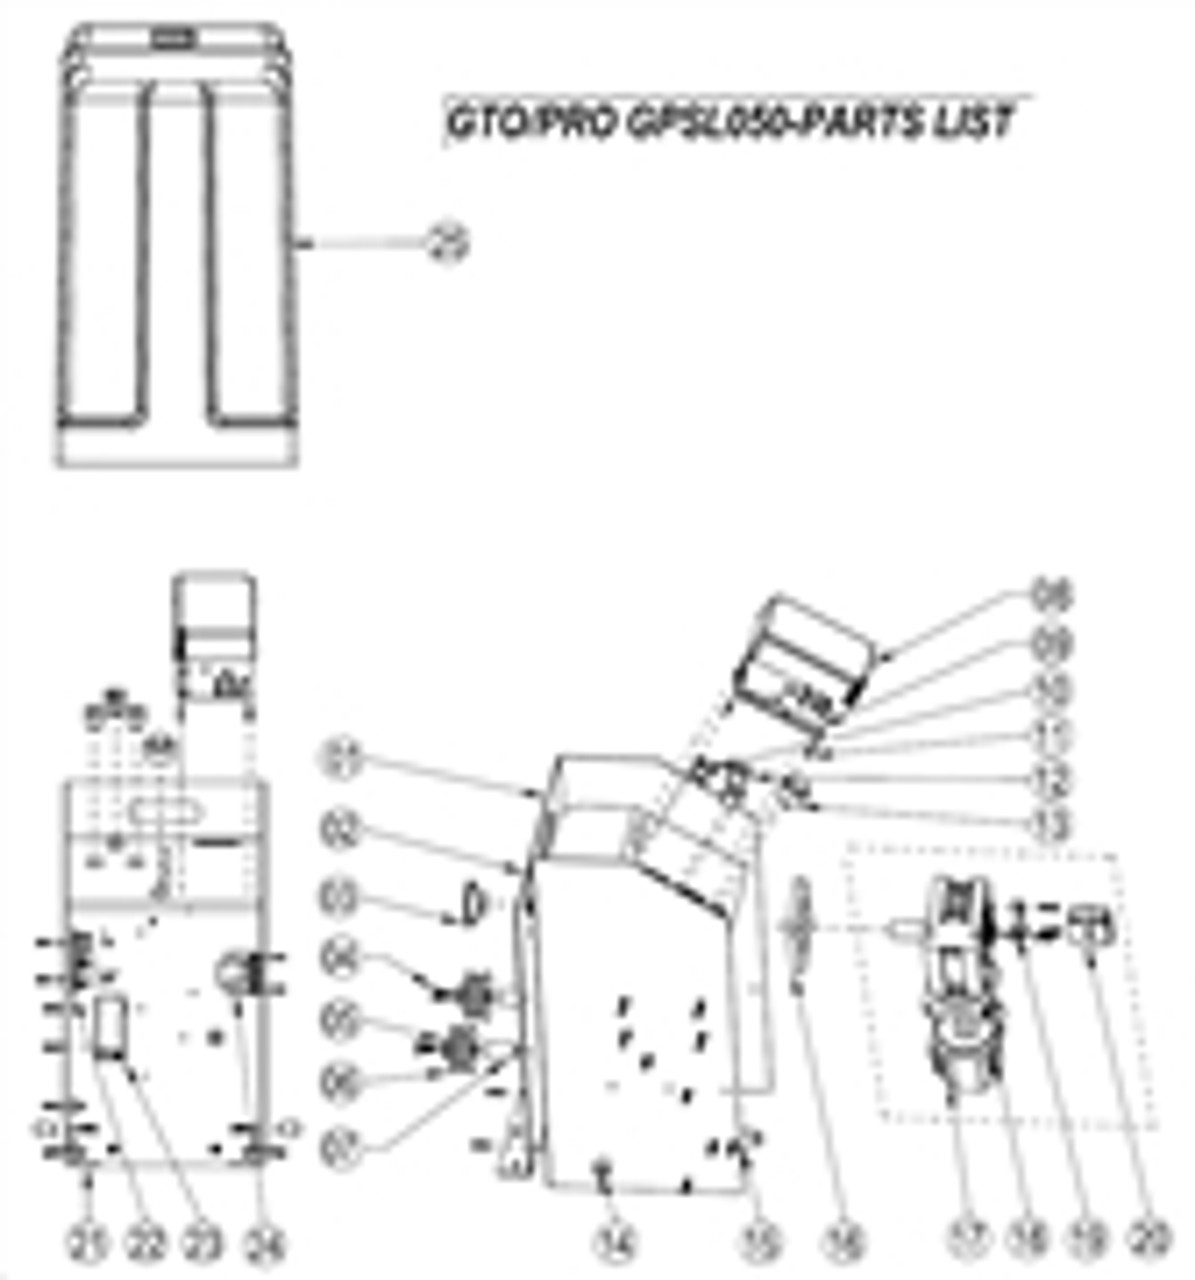 Gto Pro Gpsl050 Replacement Parts